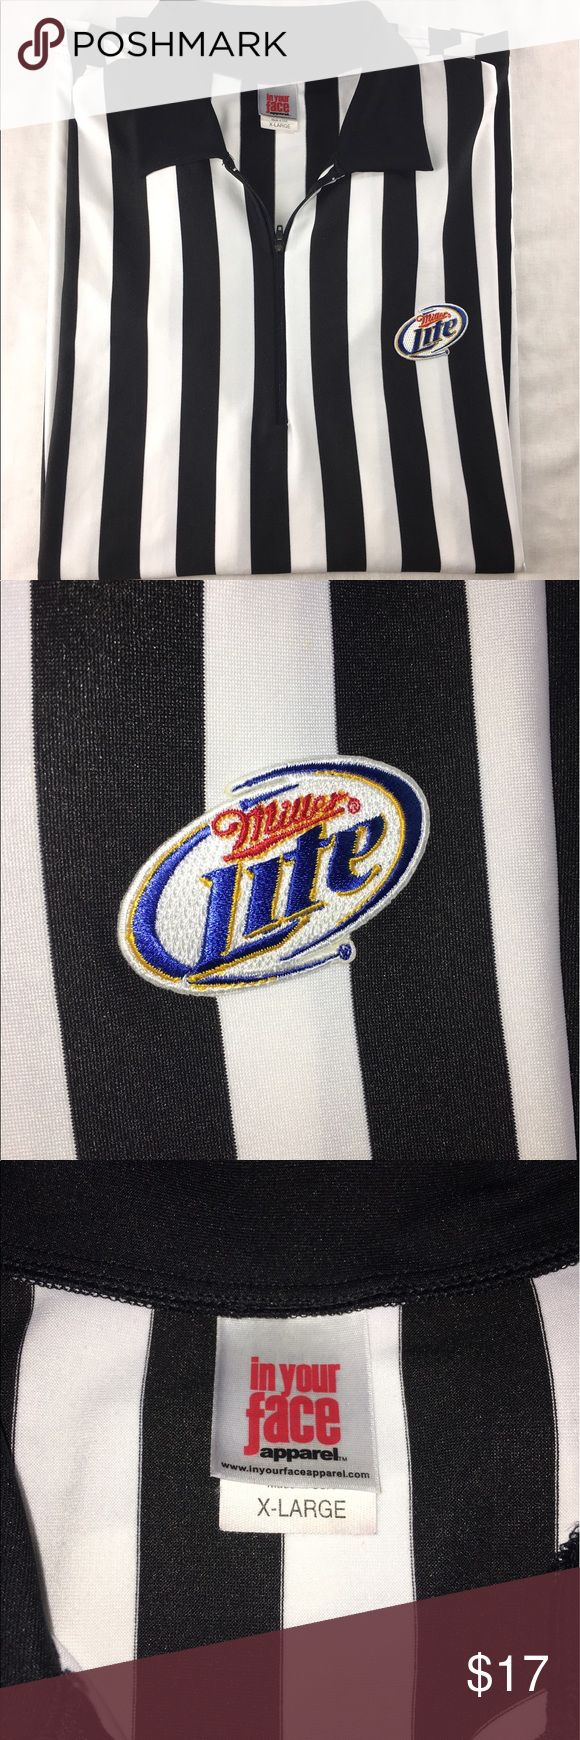 Men's Referee Shirt XL Black And White Miller Lite Men's Size XL black and white striped Miller Lite referee shirt Length: 31.5 inches Waist: 23.5 inches Underarm to Underarm: 23.25 inches Make me an offer ! In Your Face Shirts Tees - Short Sleeve